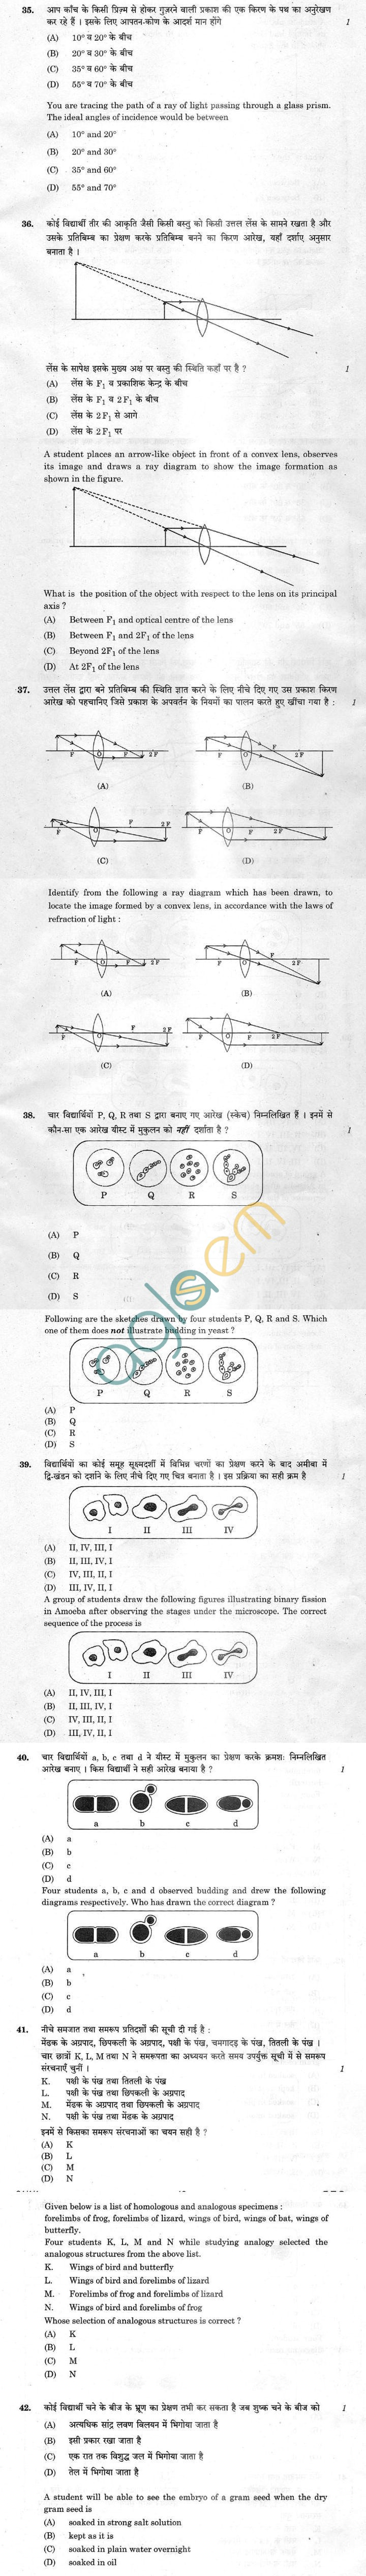 CBSE Compartment Exam 2013 Class X Question Paper -Science